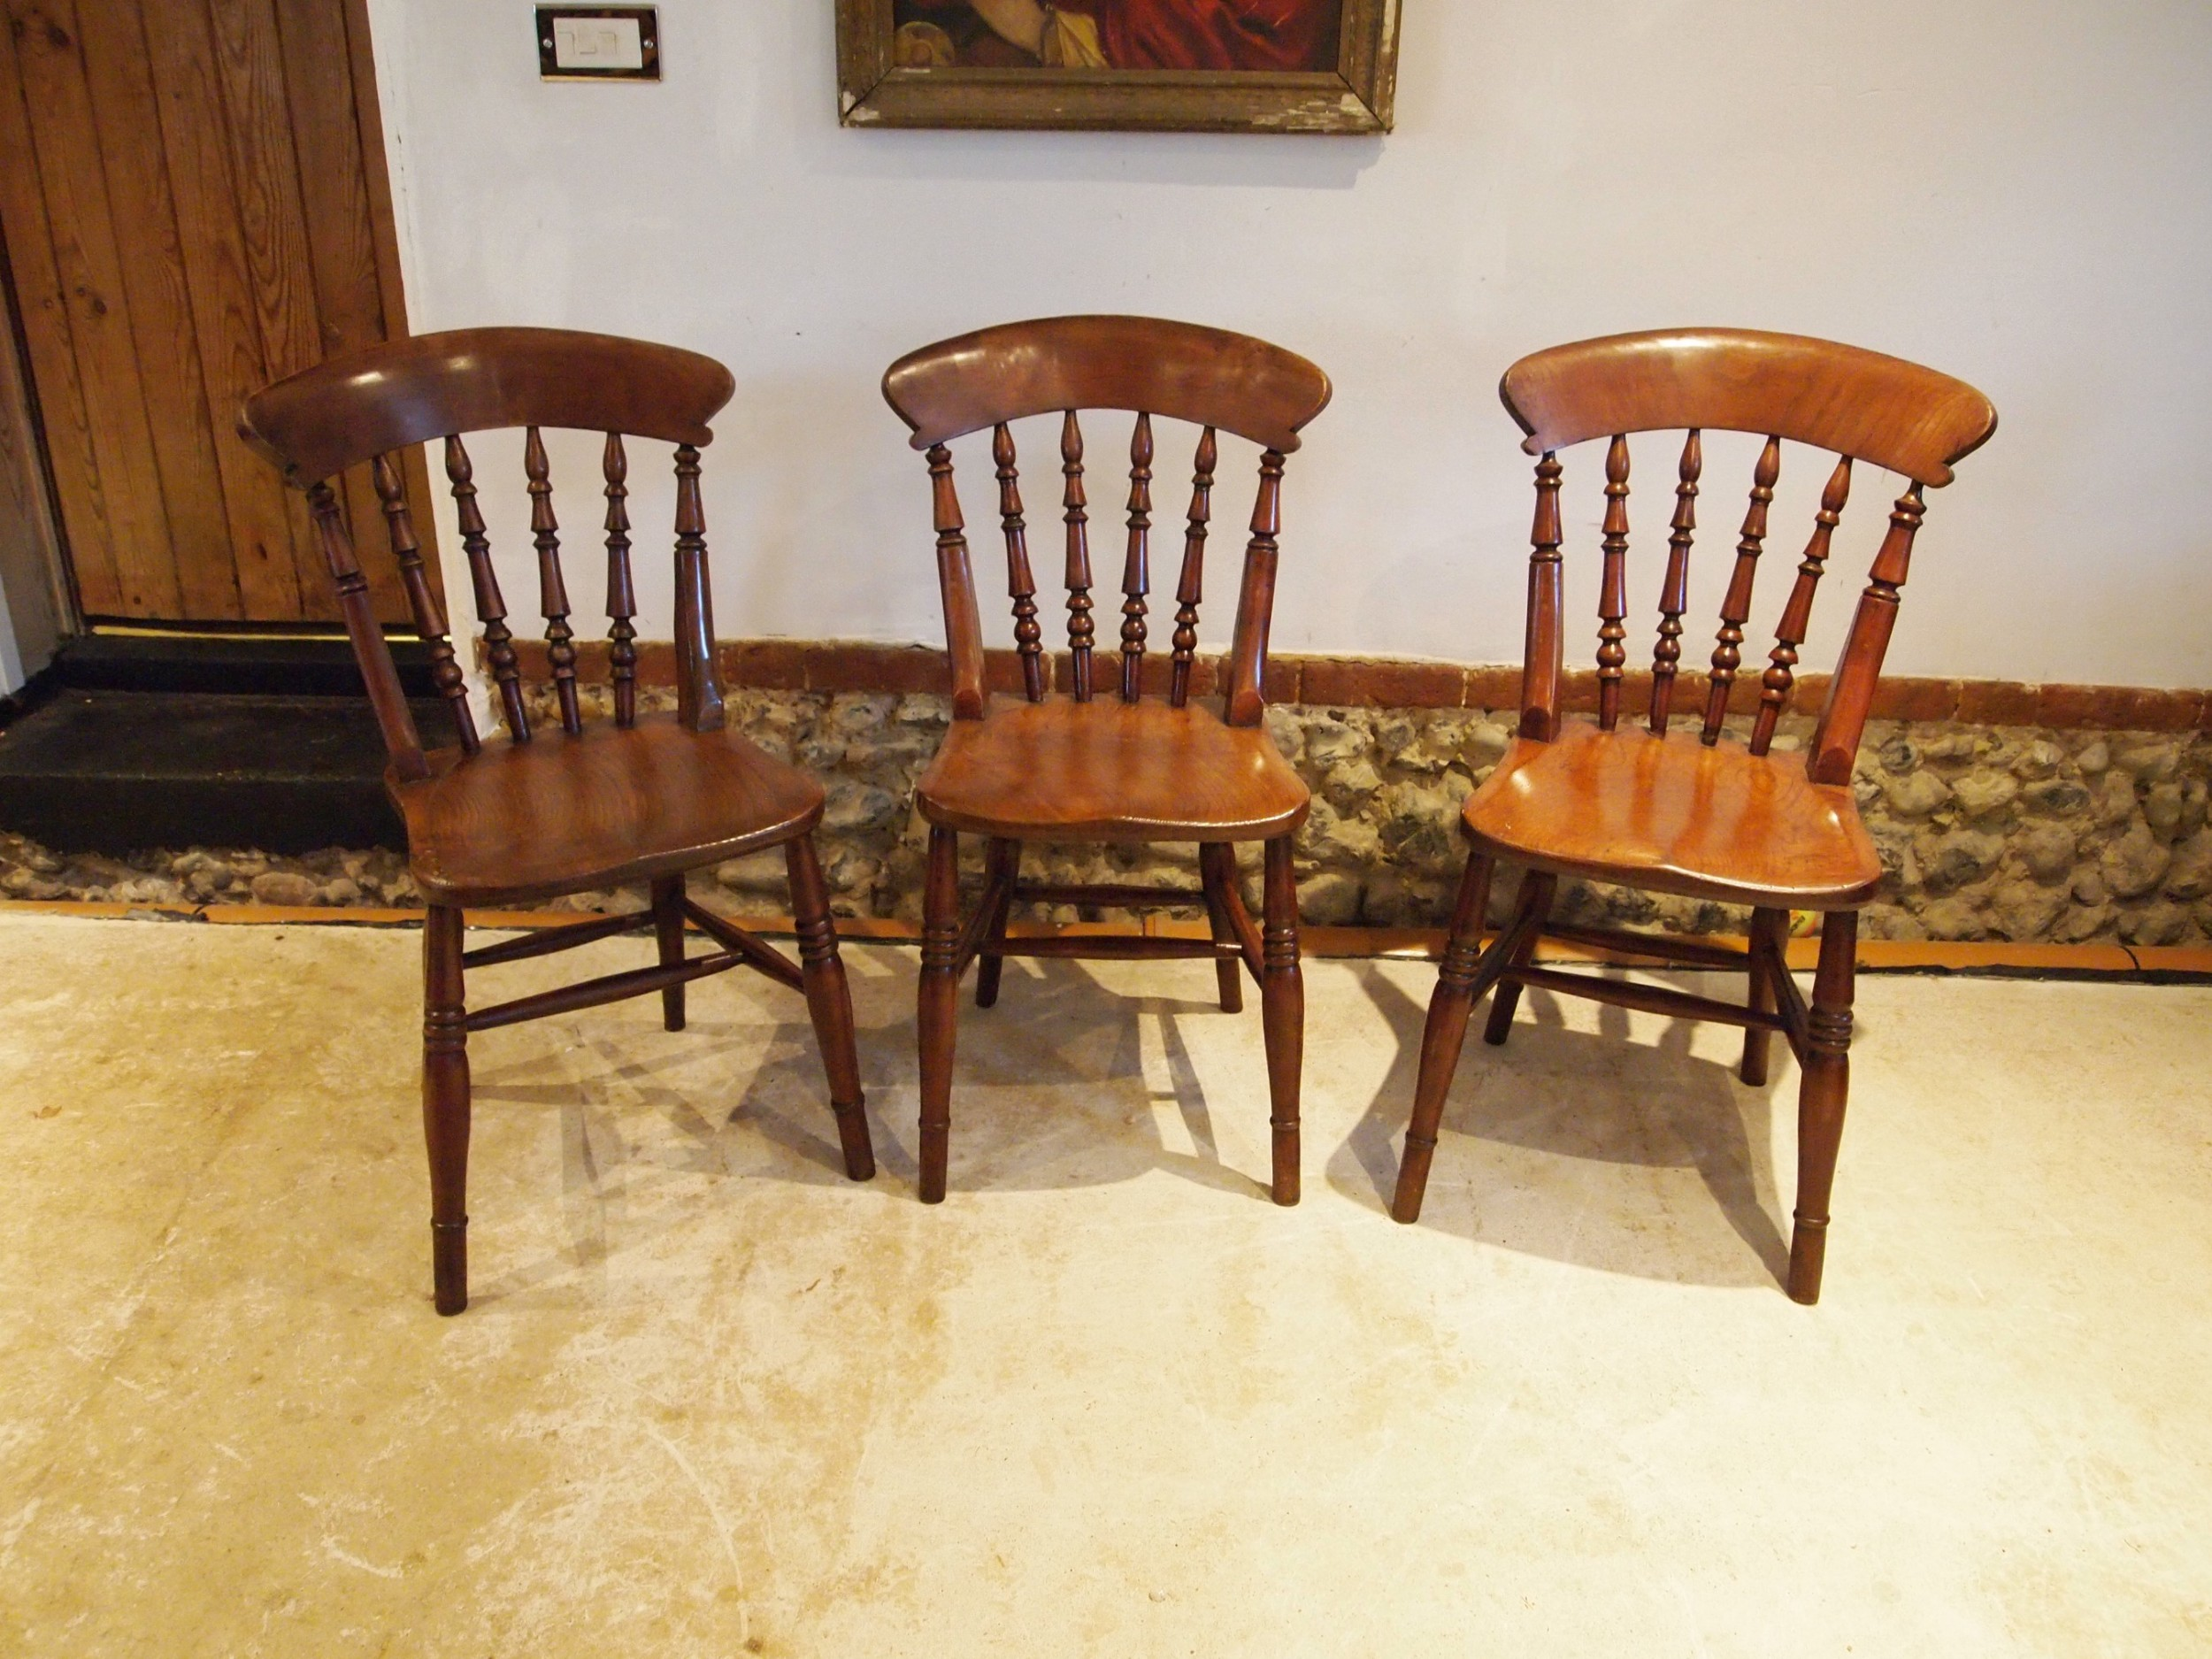 chairs set of 3 victorian windsor kitchen chairs c1870